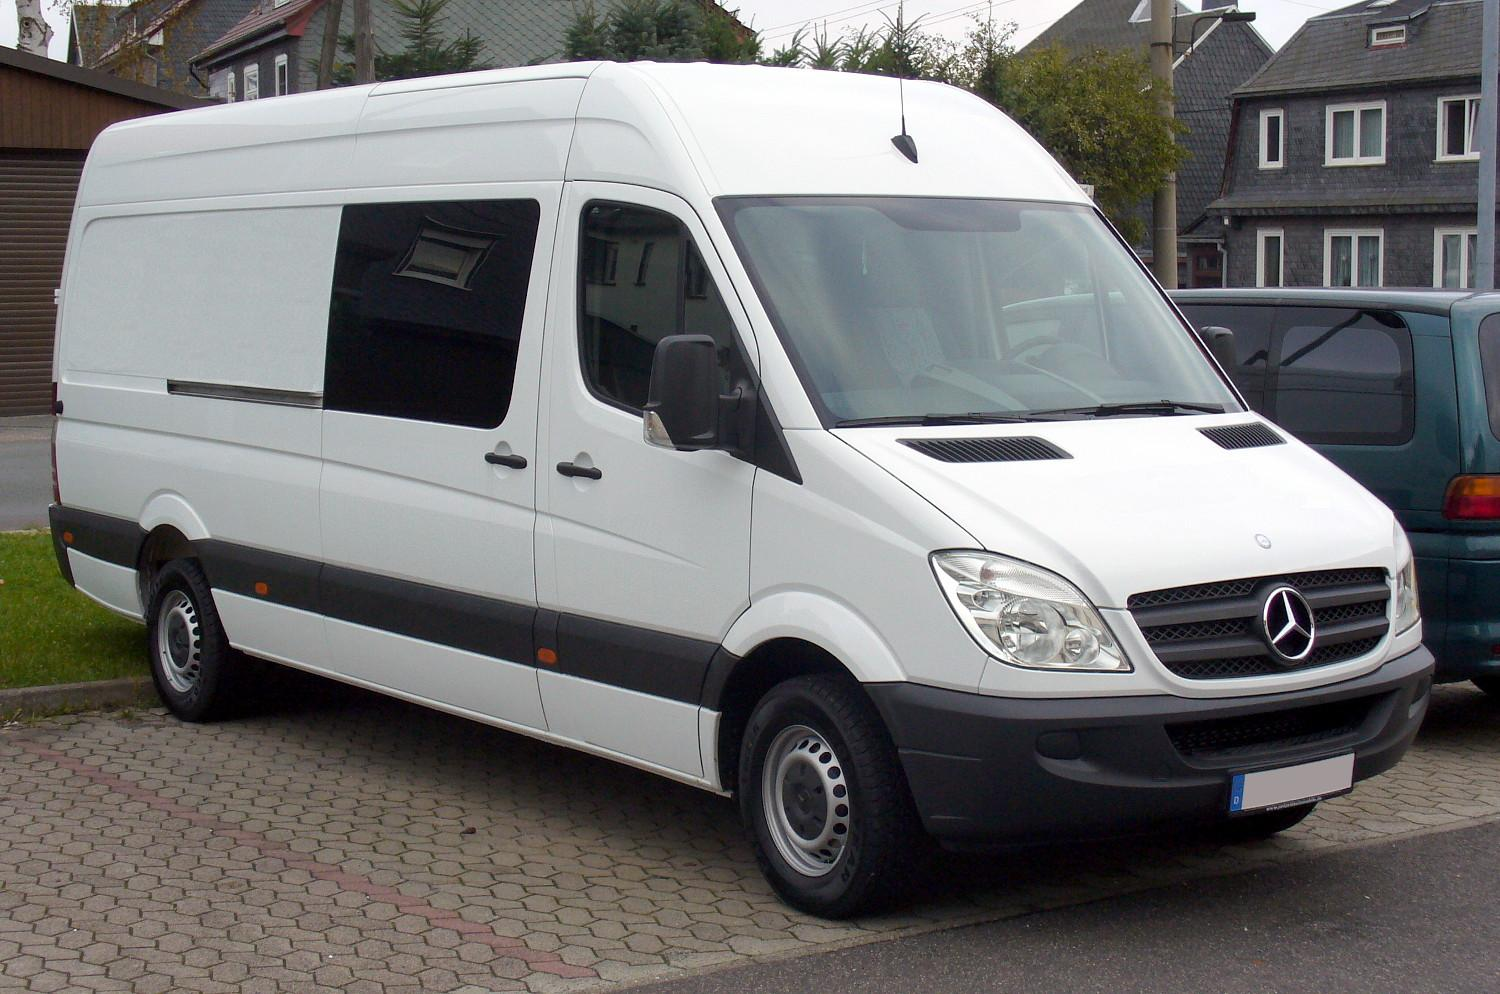 file mercedes benz sprinter jpg wikipedia. Black Bedroom Furniture Sets. Home Design Ideas